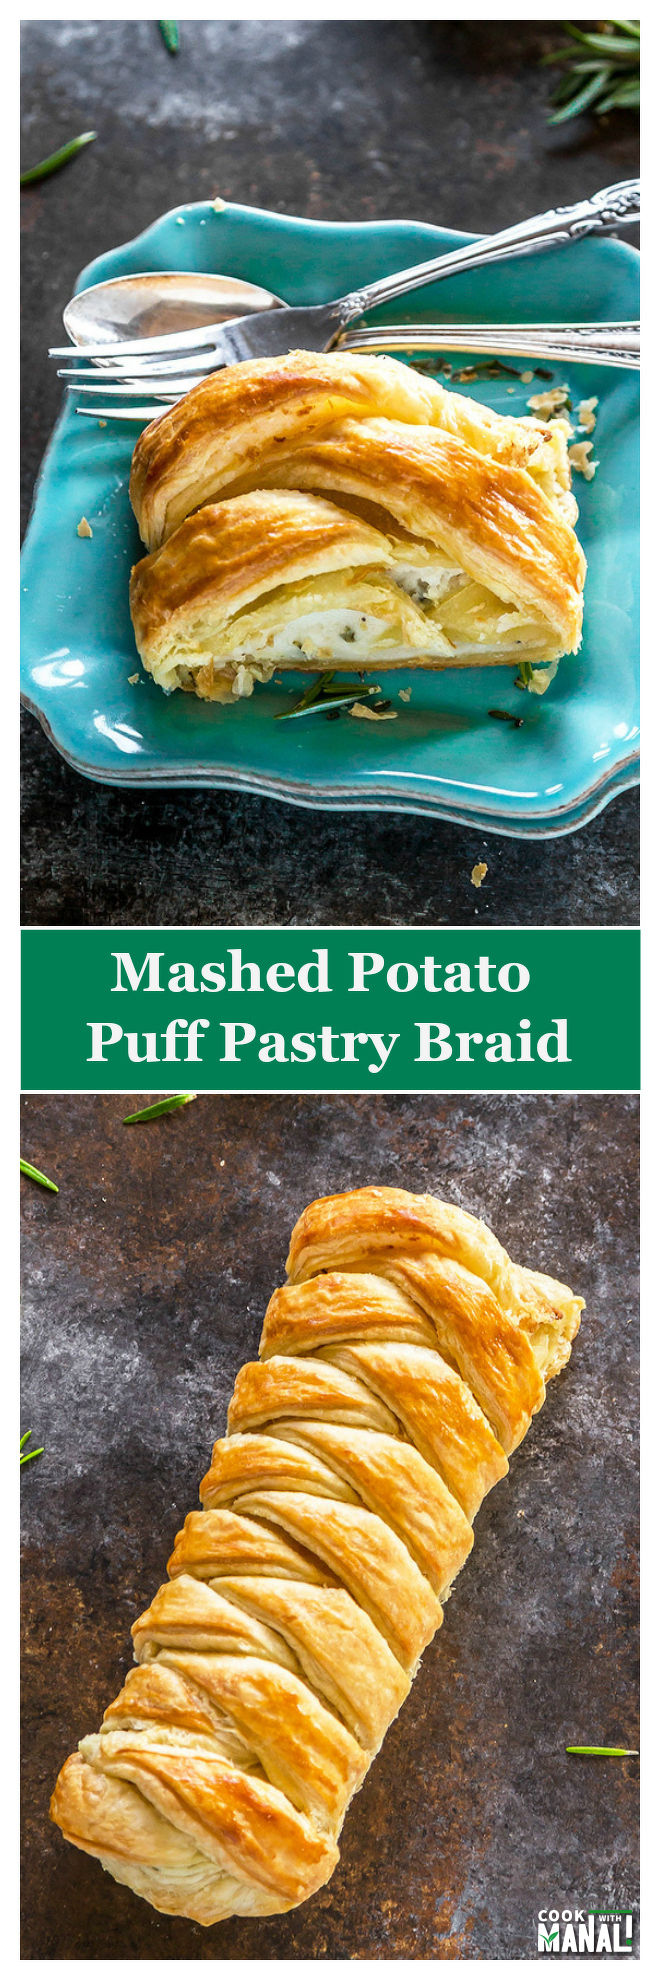 mashed-potato-puff-pastry-braid-collage